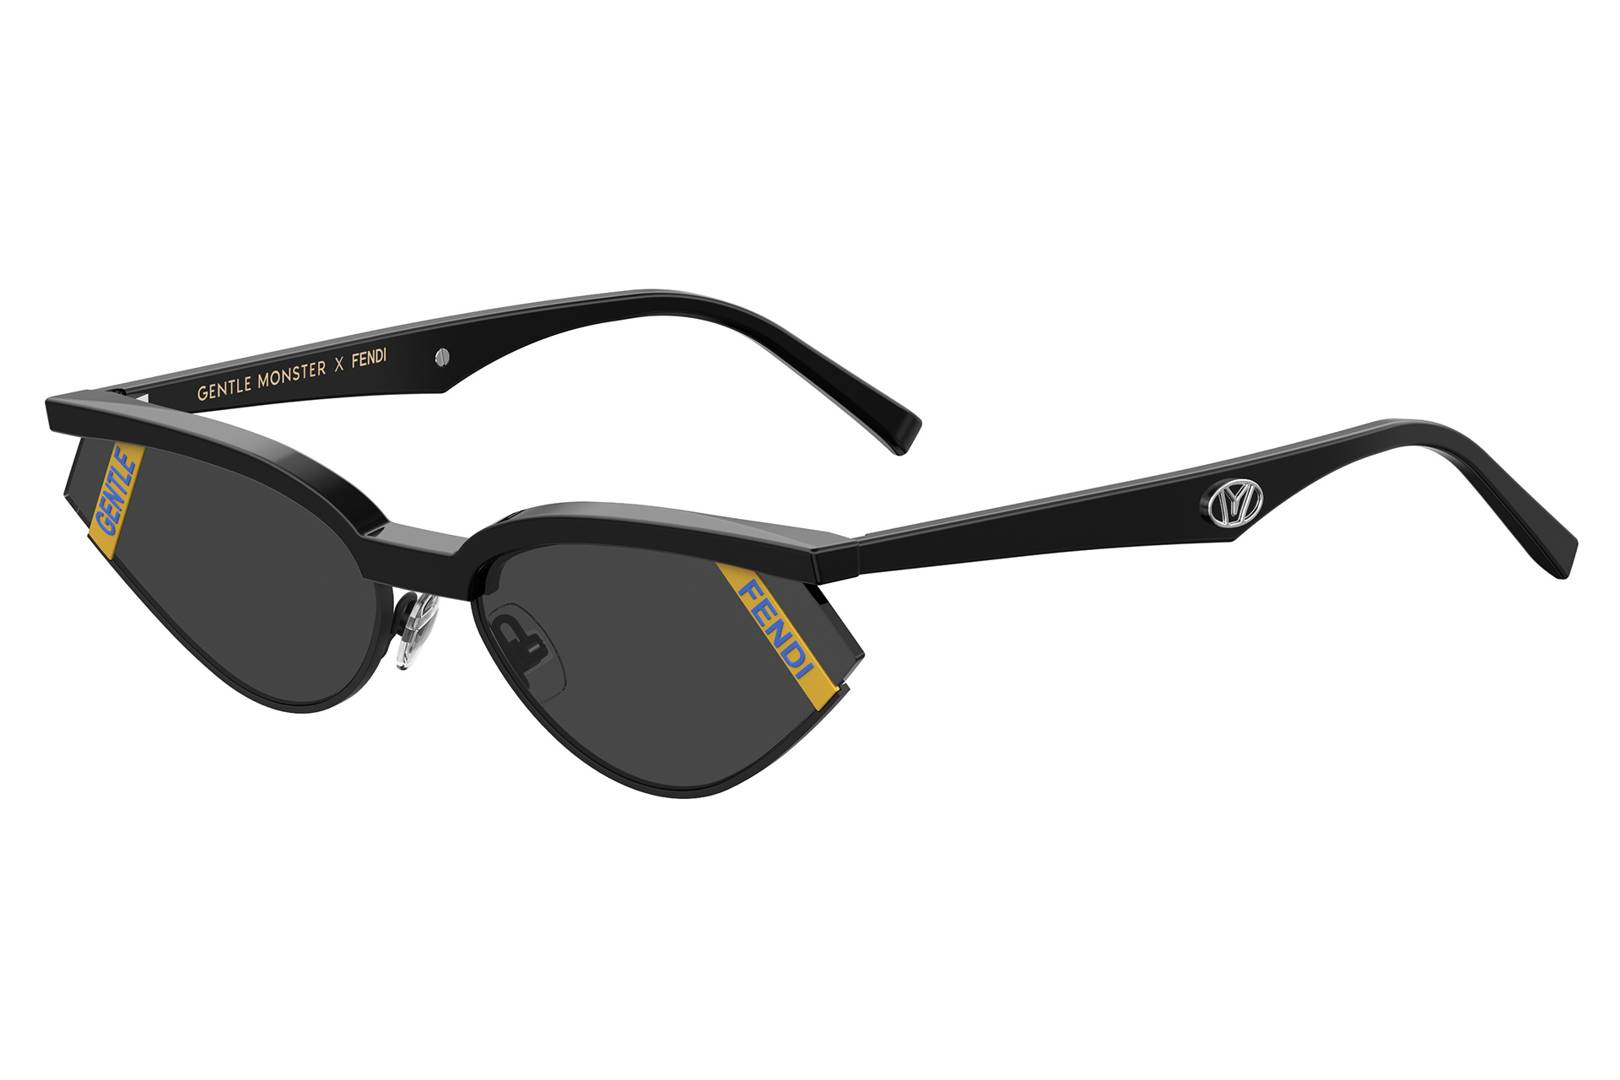 92862b7141ad Fendi x Gentle Monster: The collaboration that will up your sunglasses game  | British GQ